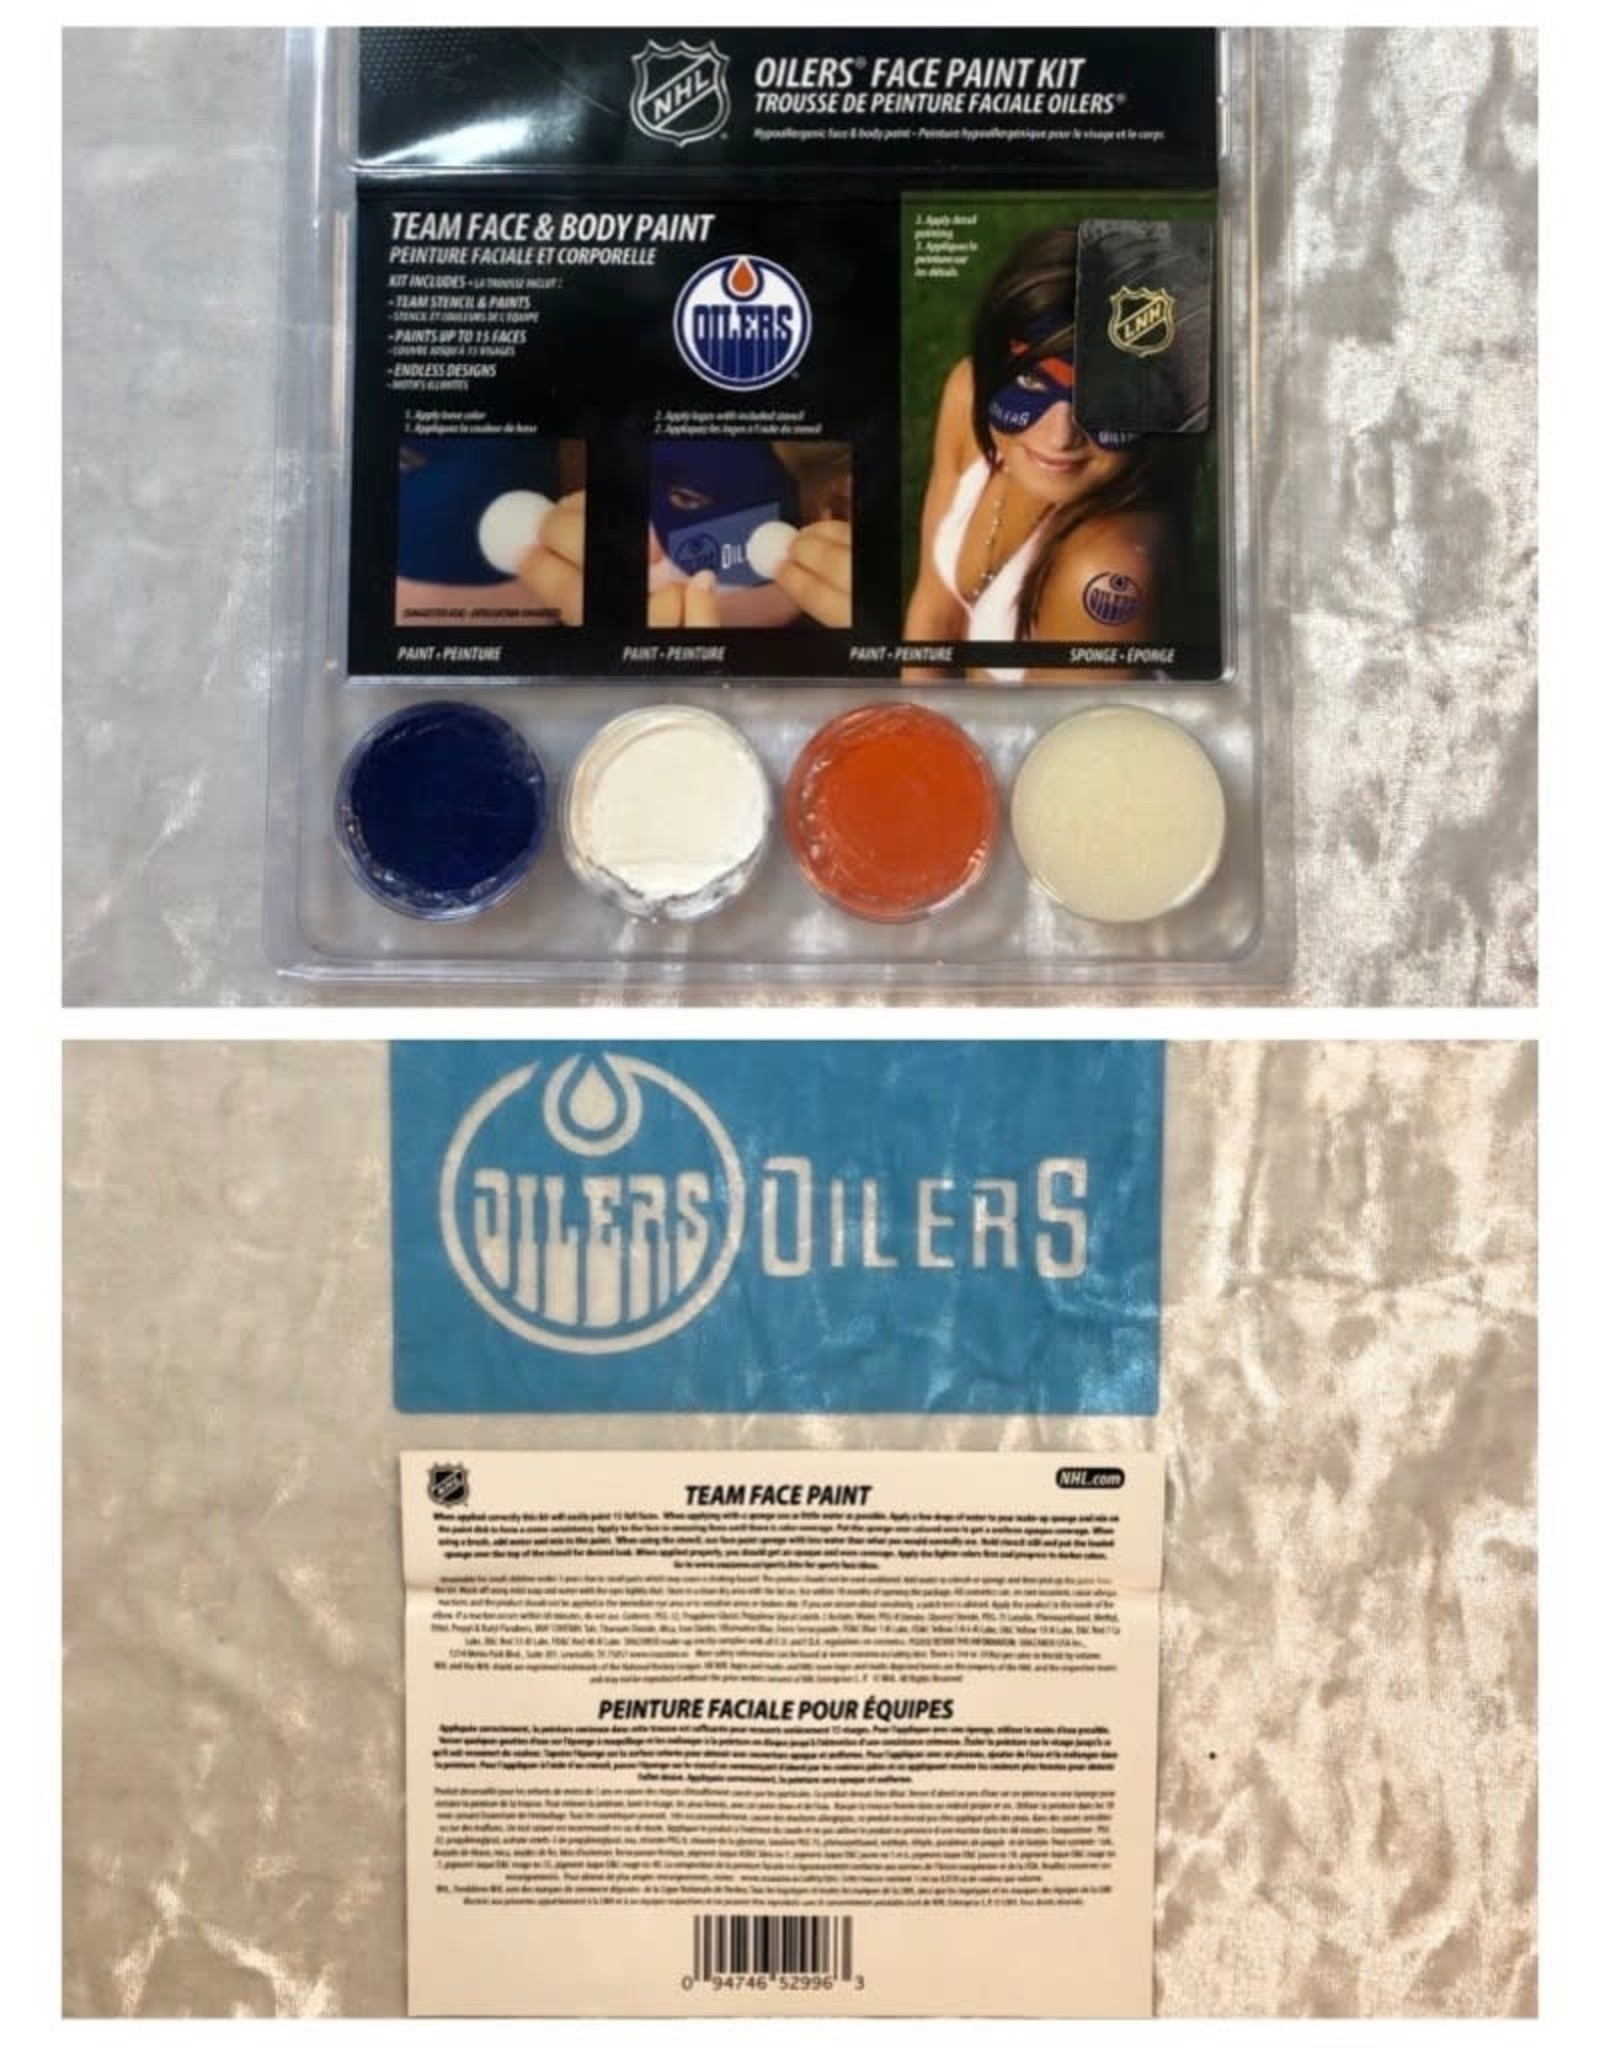 NHL Oilers Face Paint Kit